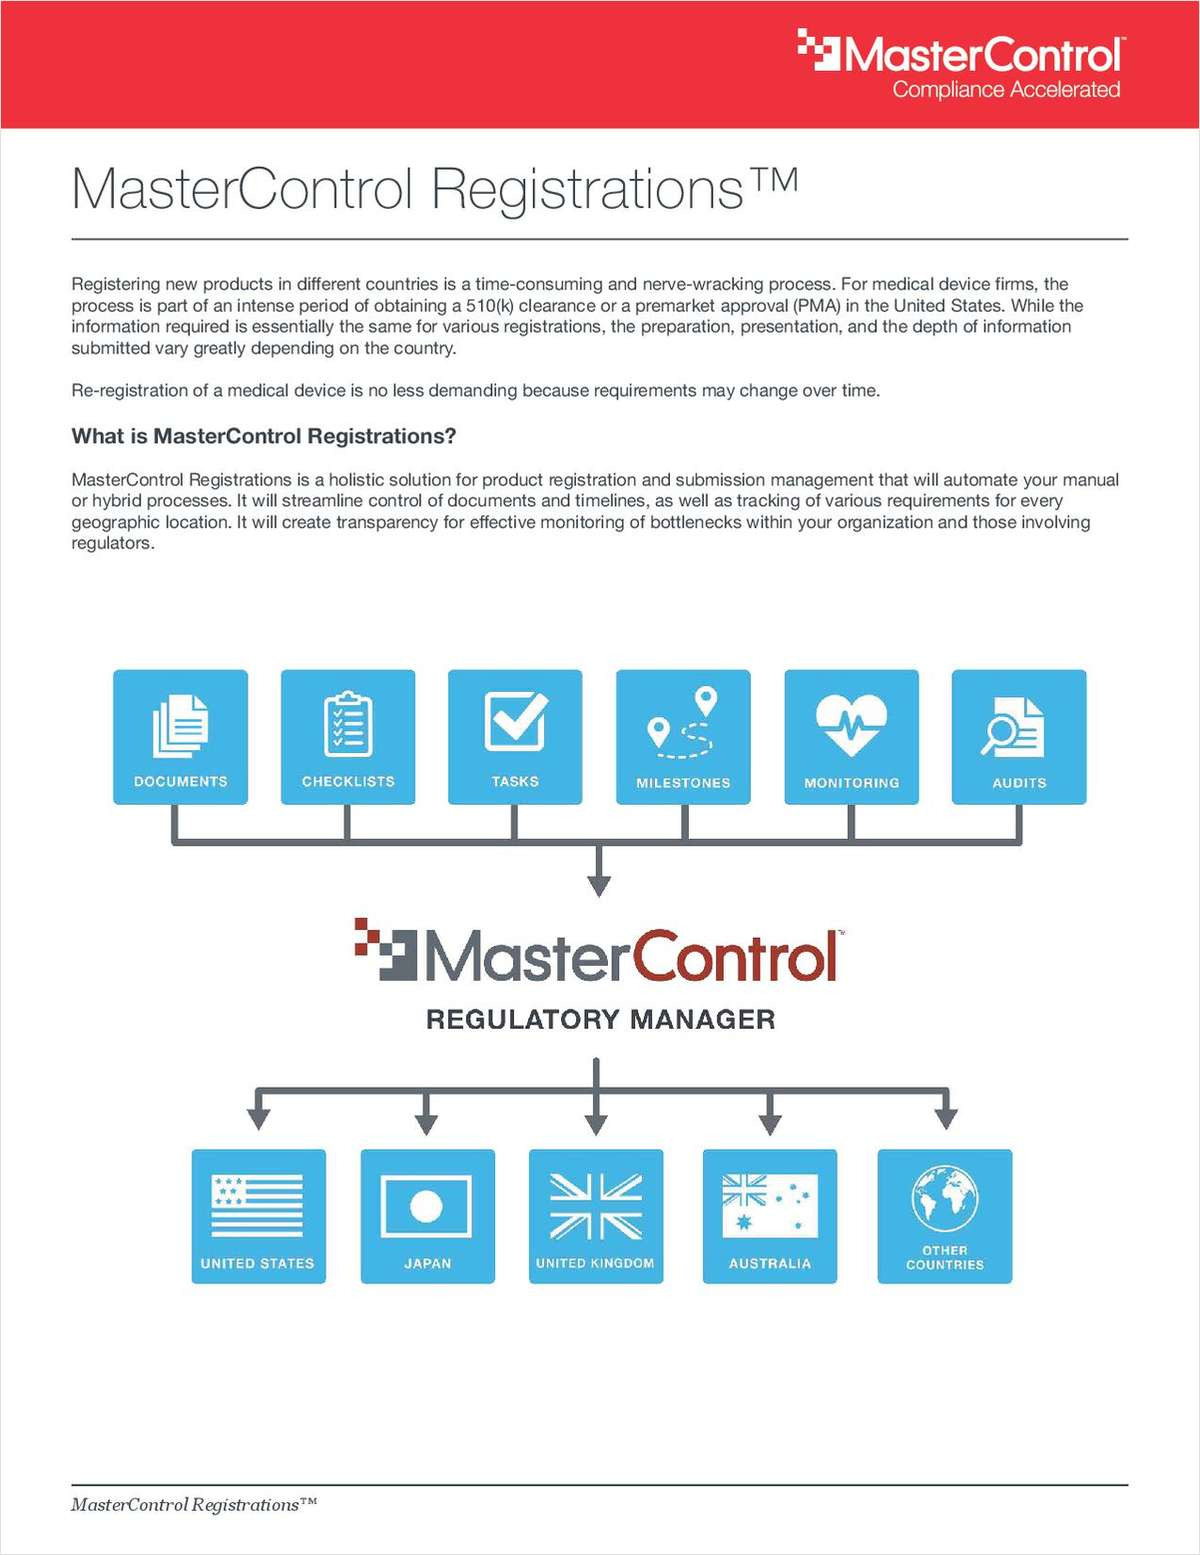 MasterControl Registrations for Medical Device